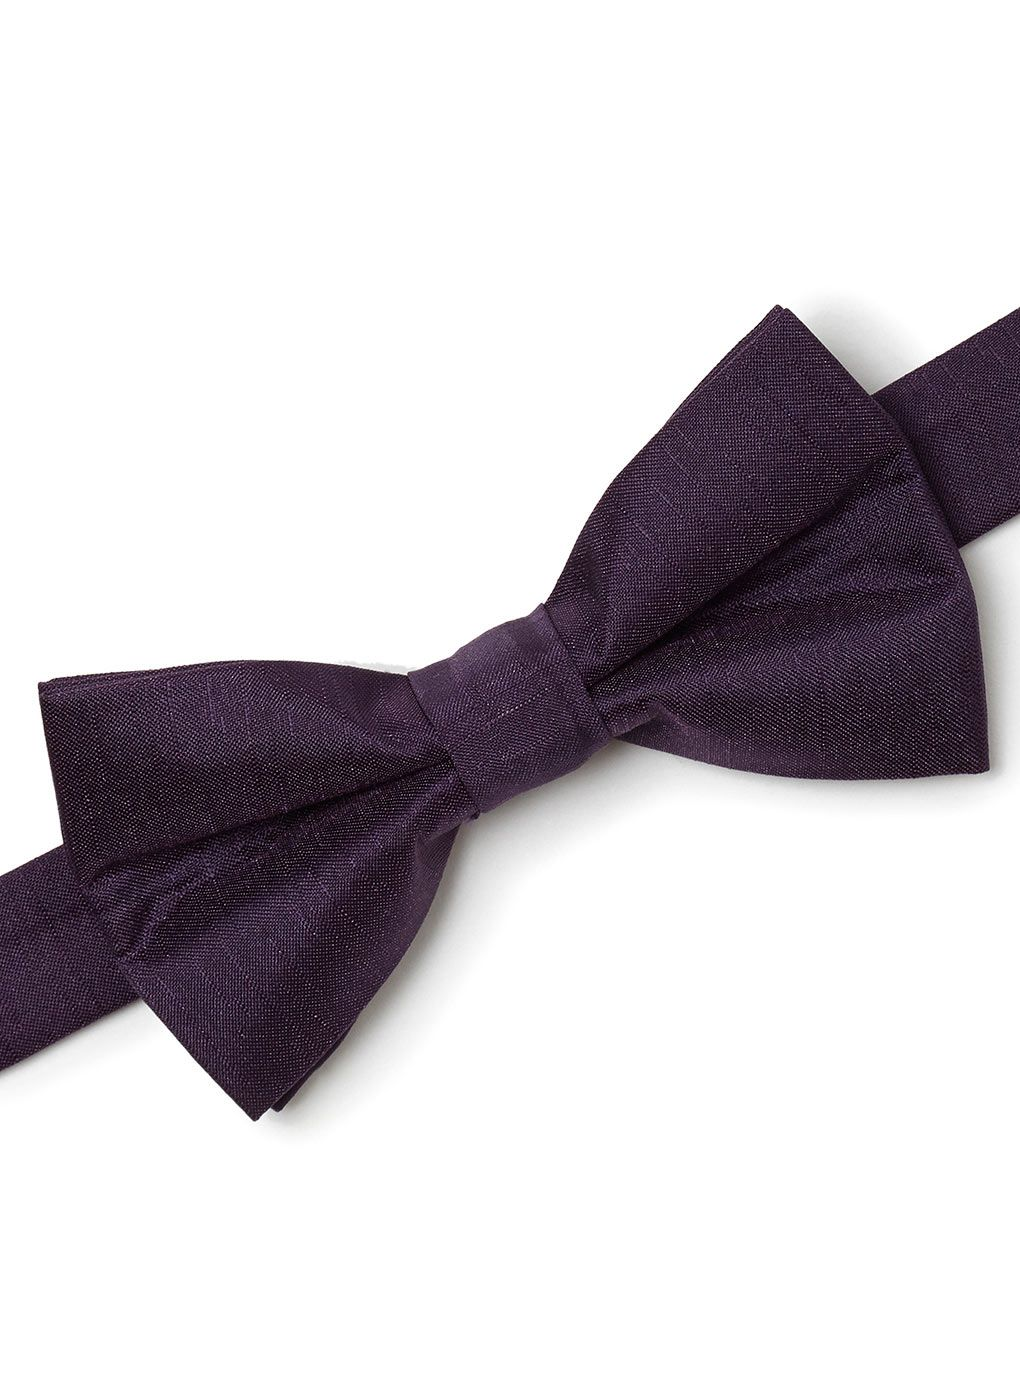 Baby Bow Tie Http Www Weddingheart Co Uk Bhs Page Boys Html